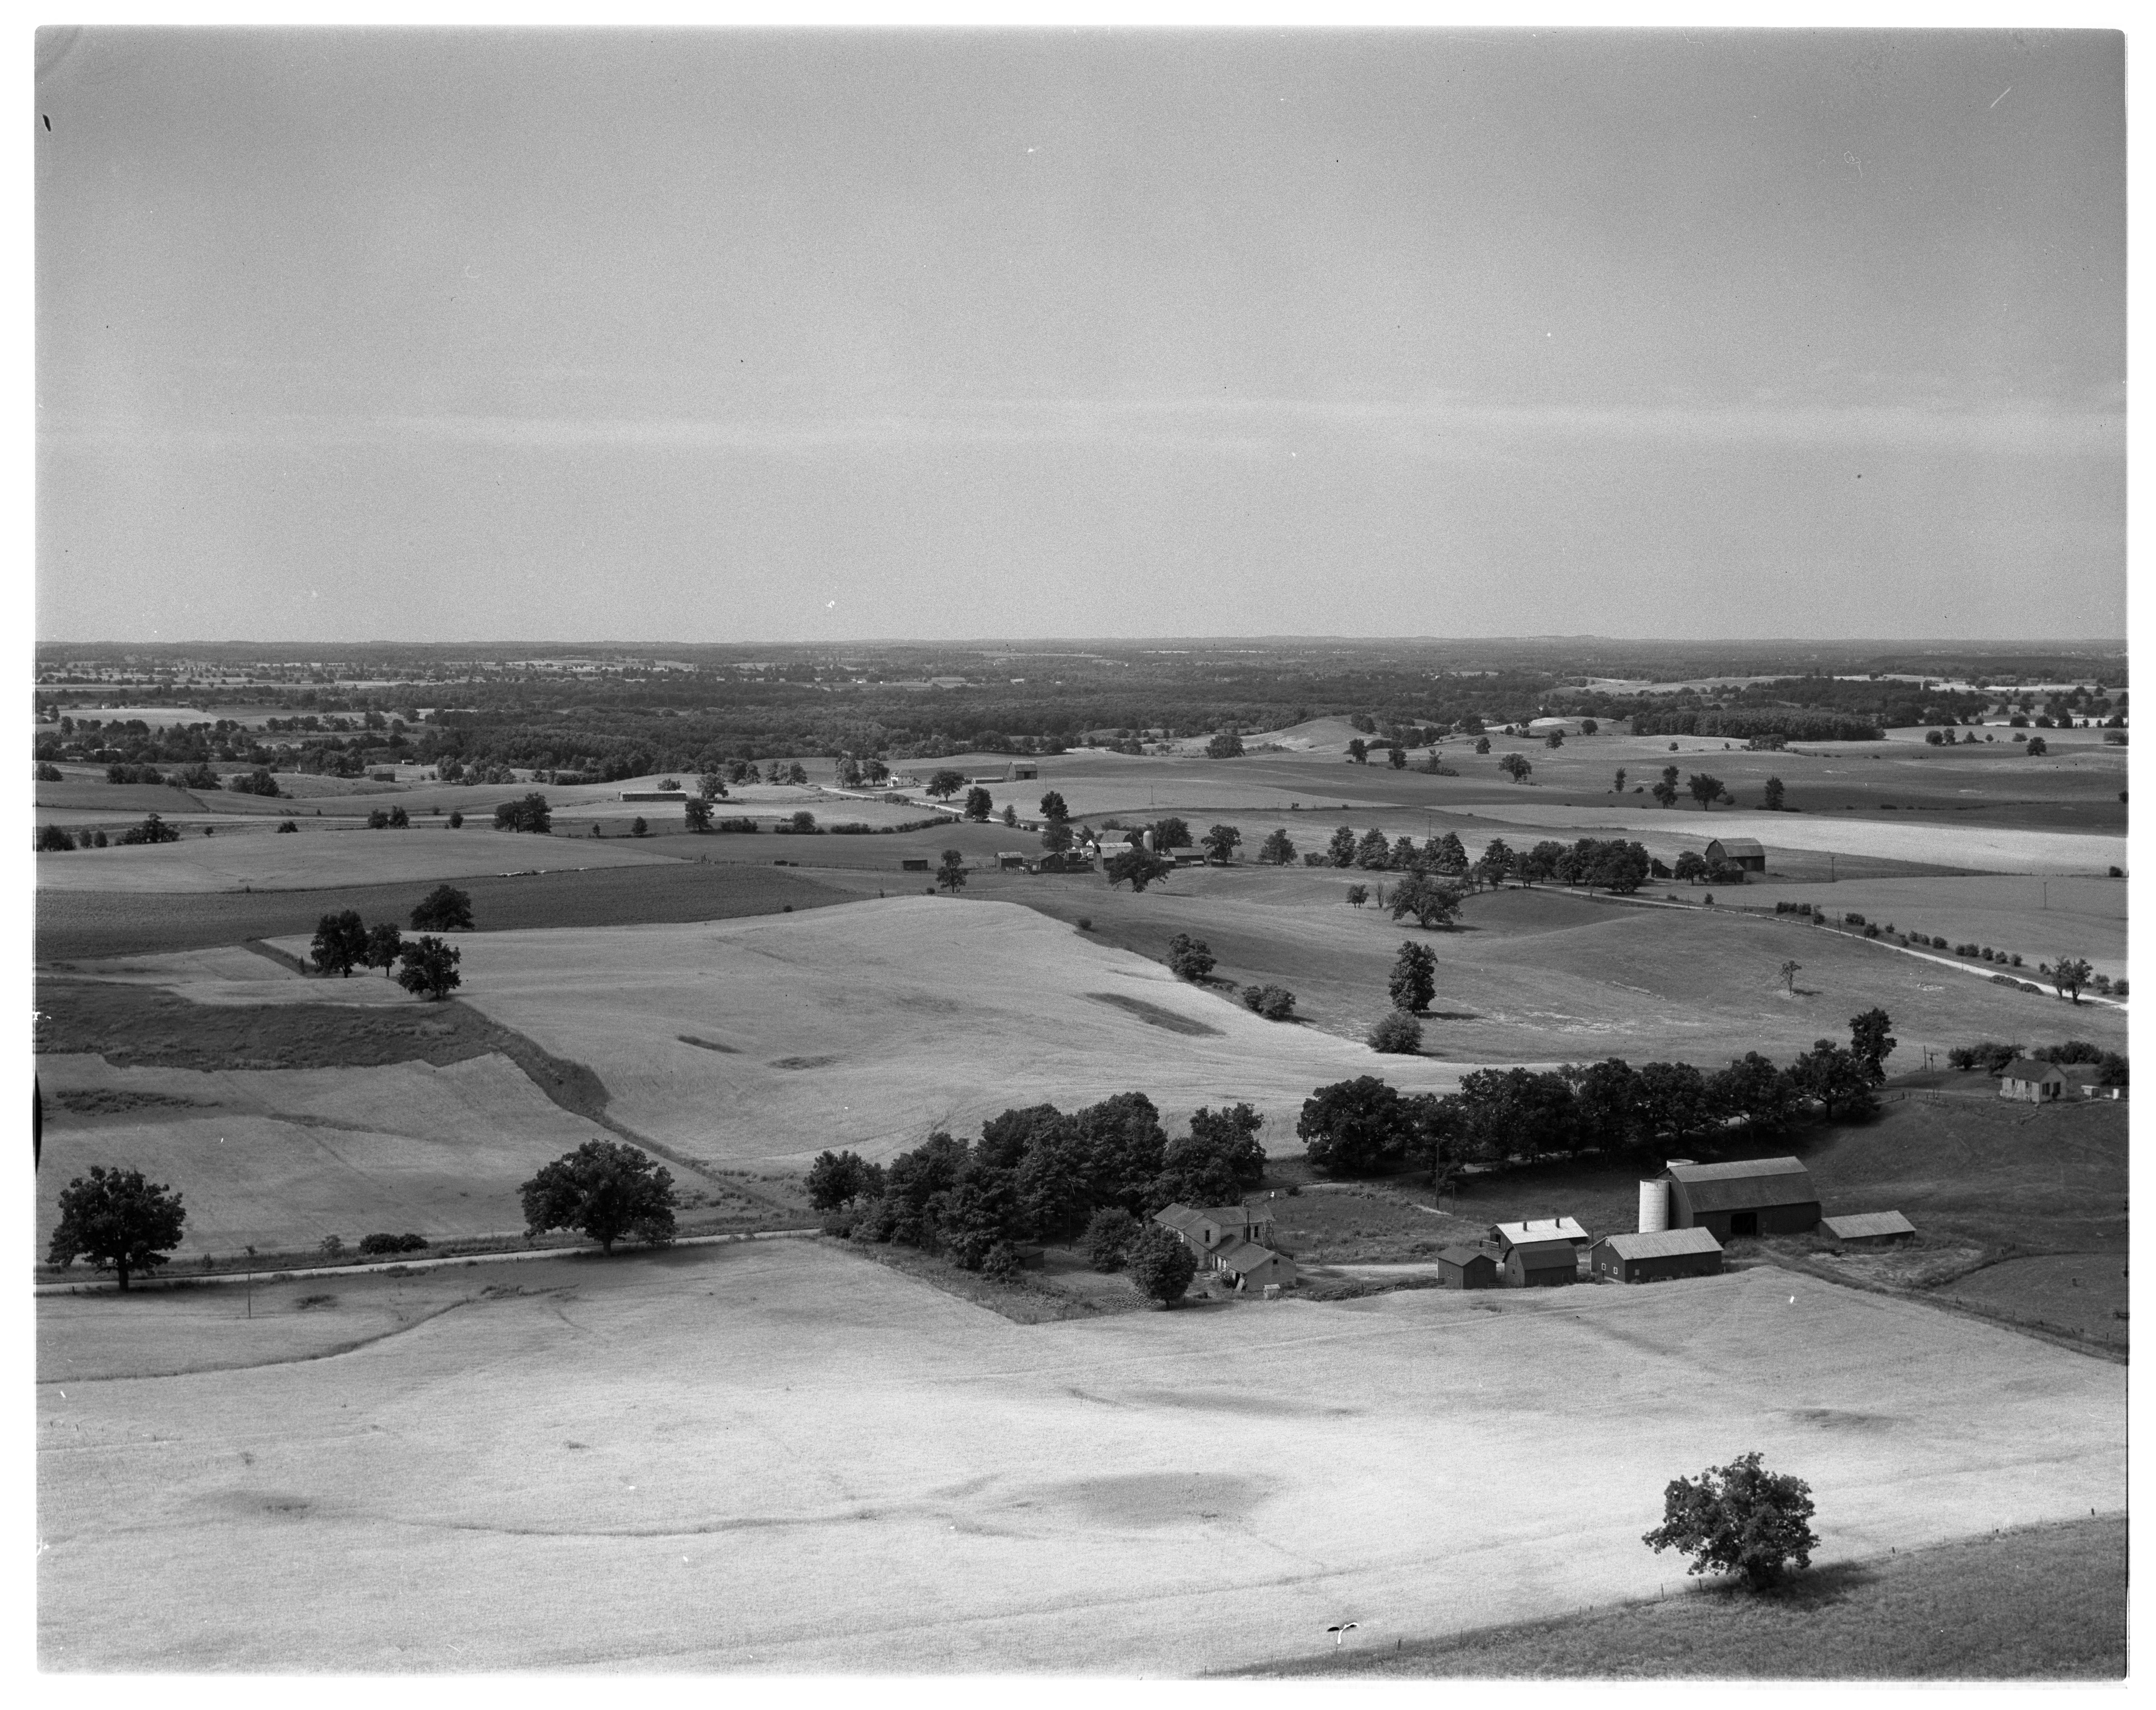 Aerial Photograph of Farm Land in Sharon Township, August 1956 image